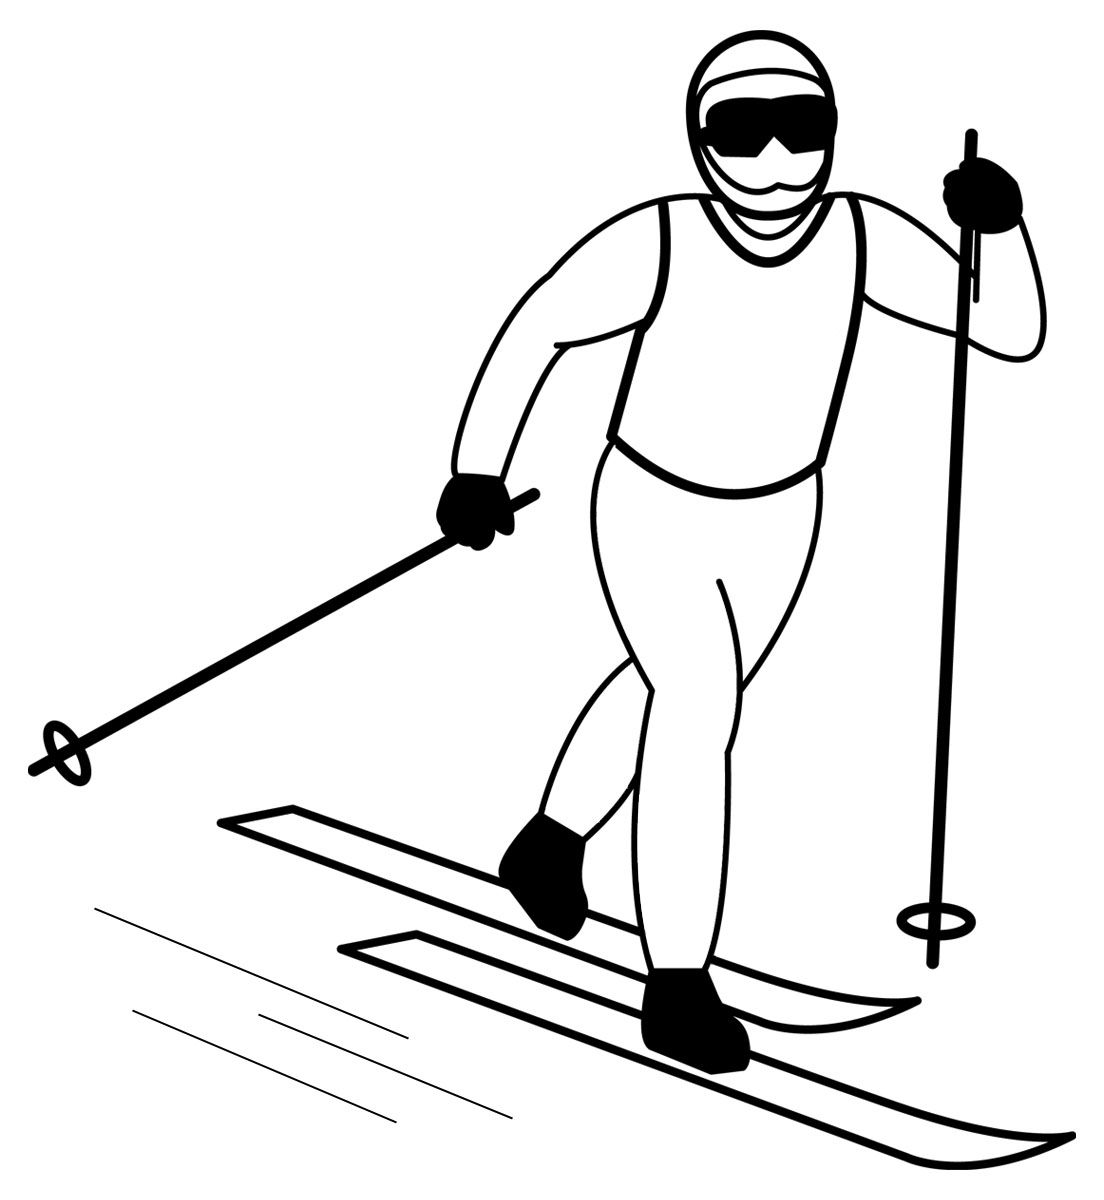 Animated skier clipart clip art black and white download Animated Snowflakes Clipart | Free Download Clip Art | Free Clip ... clip art black and white download